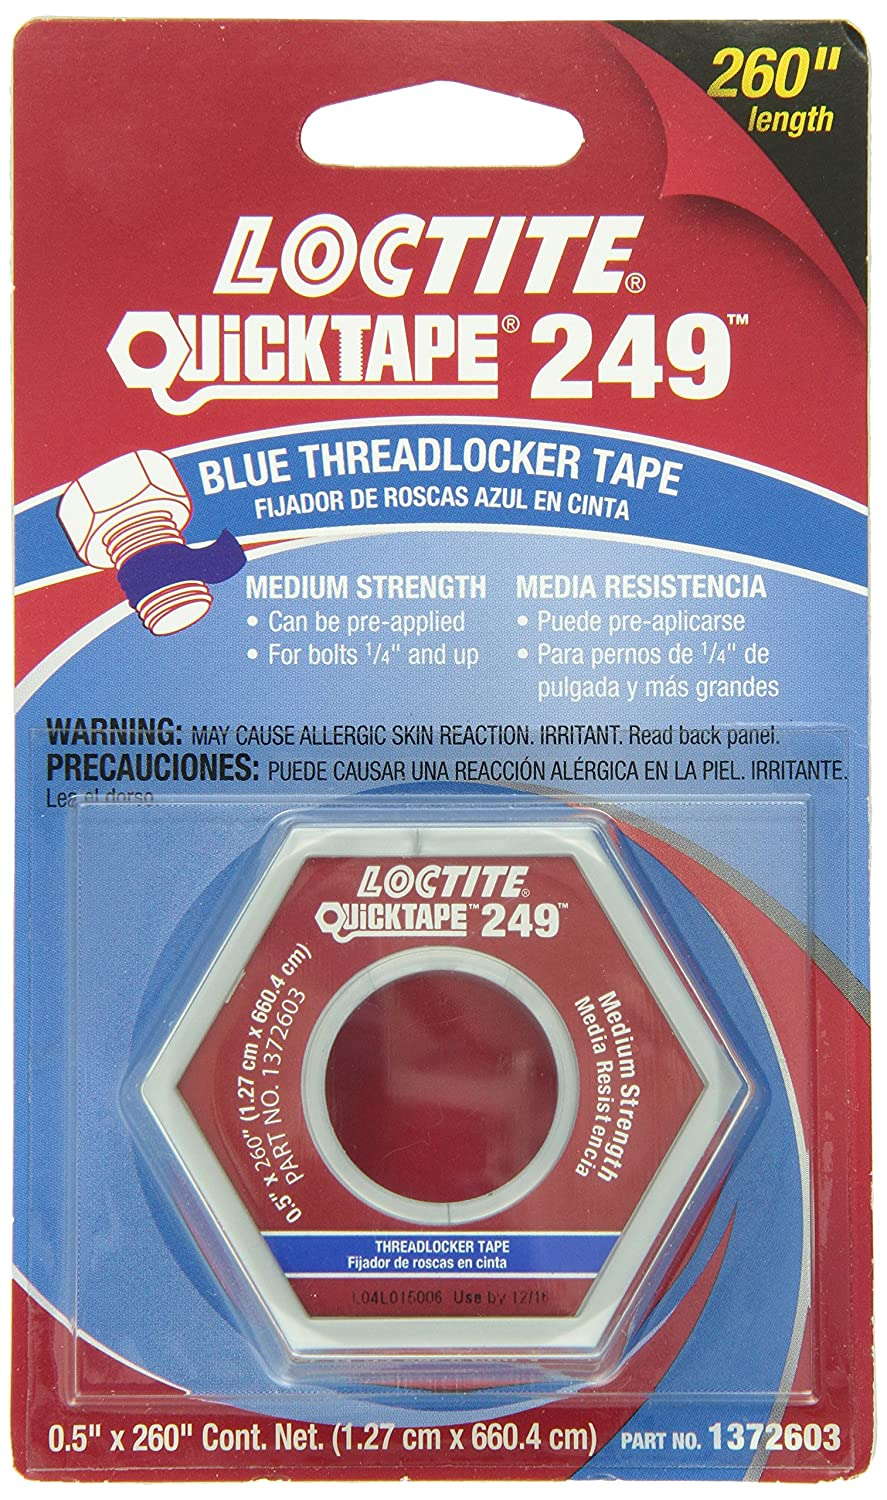 Loctite 1372603 Blue Thread Locker Tape